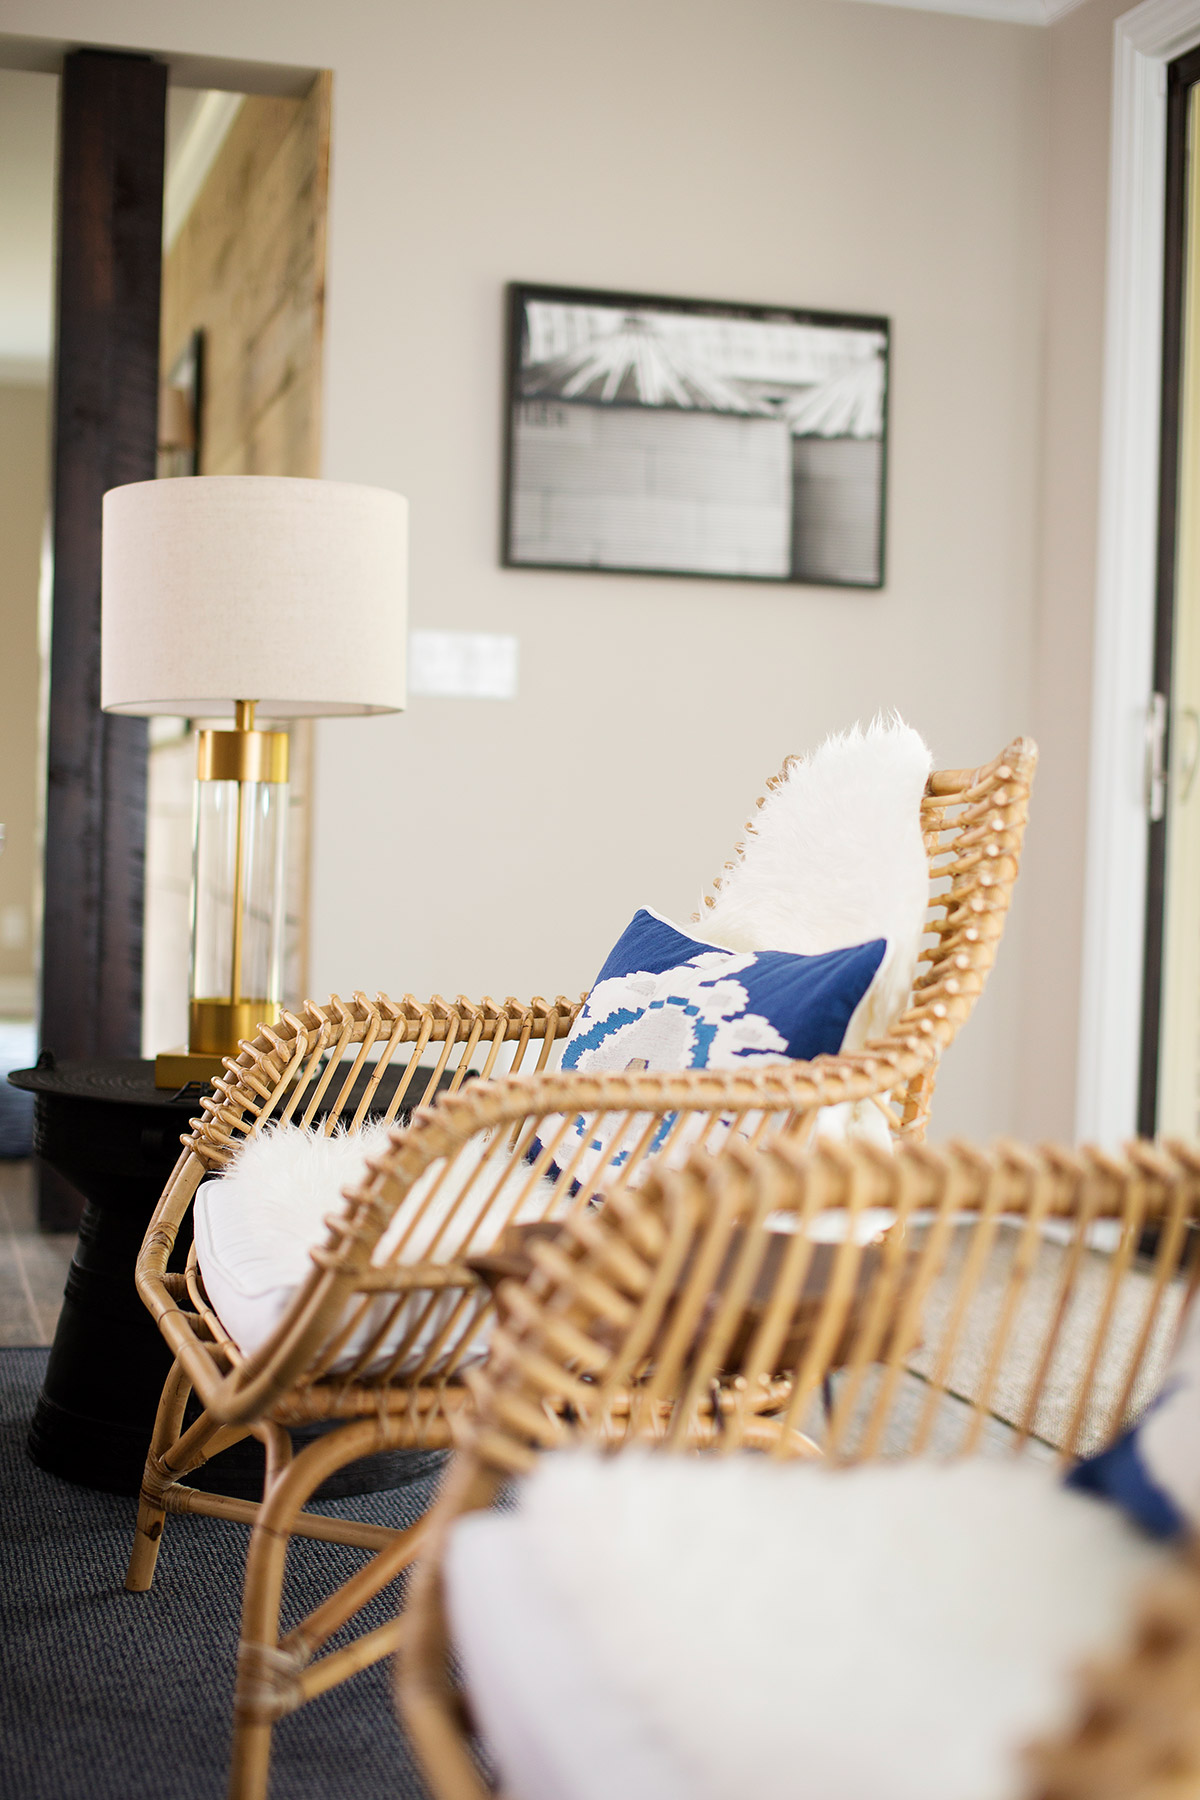 Rattan chairs in casual basement